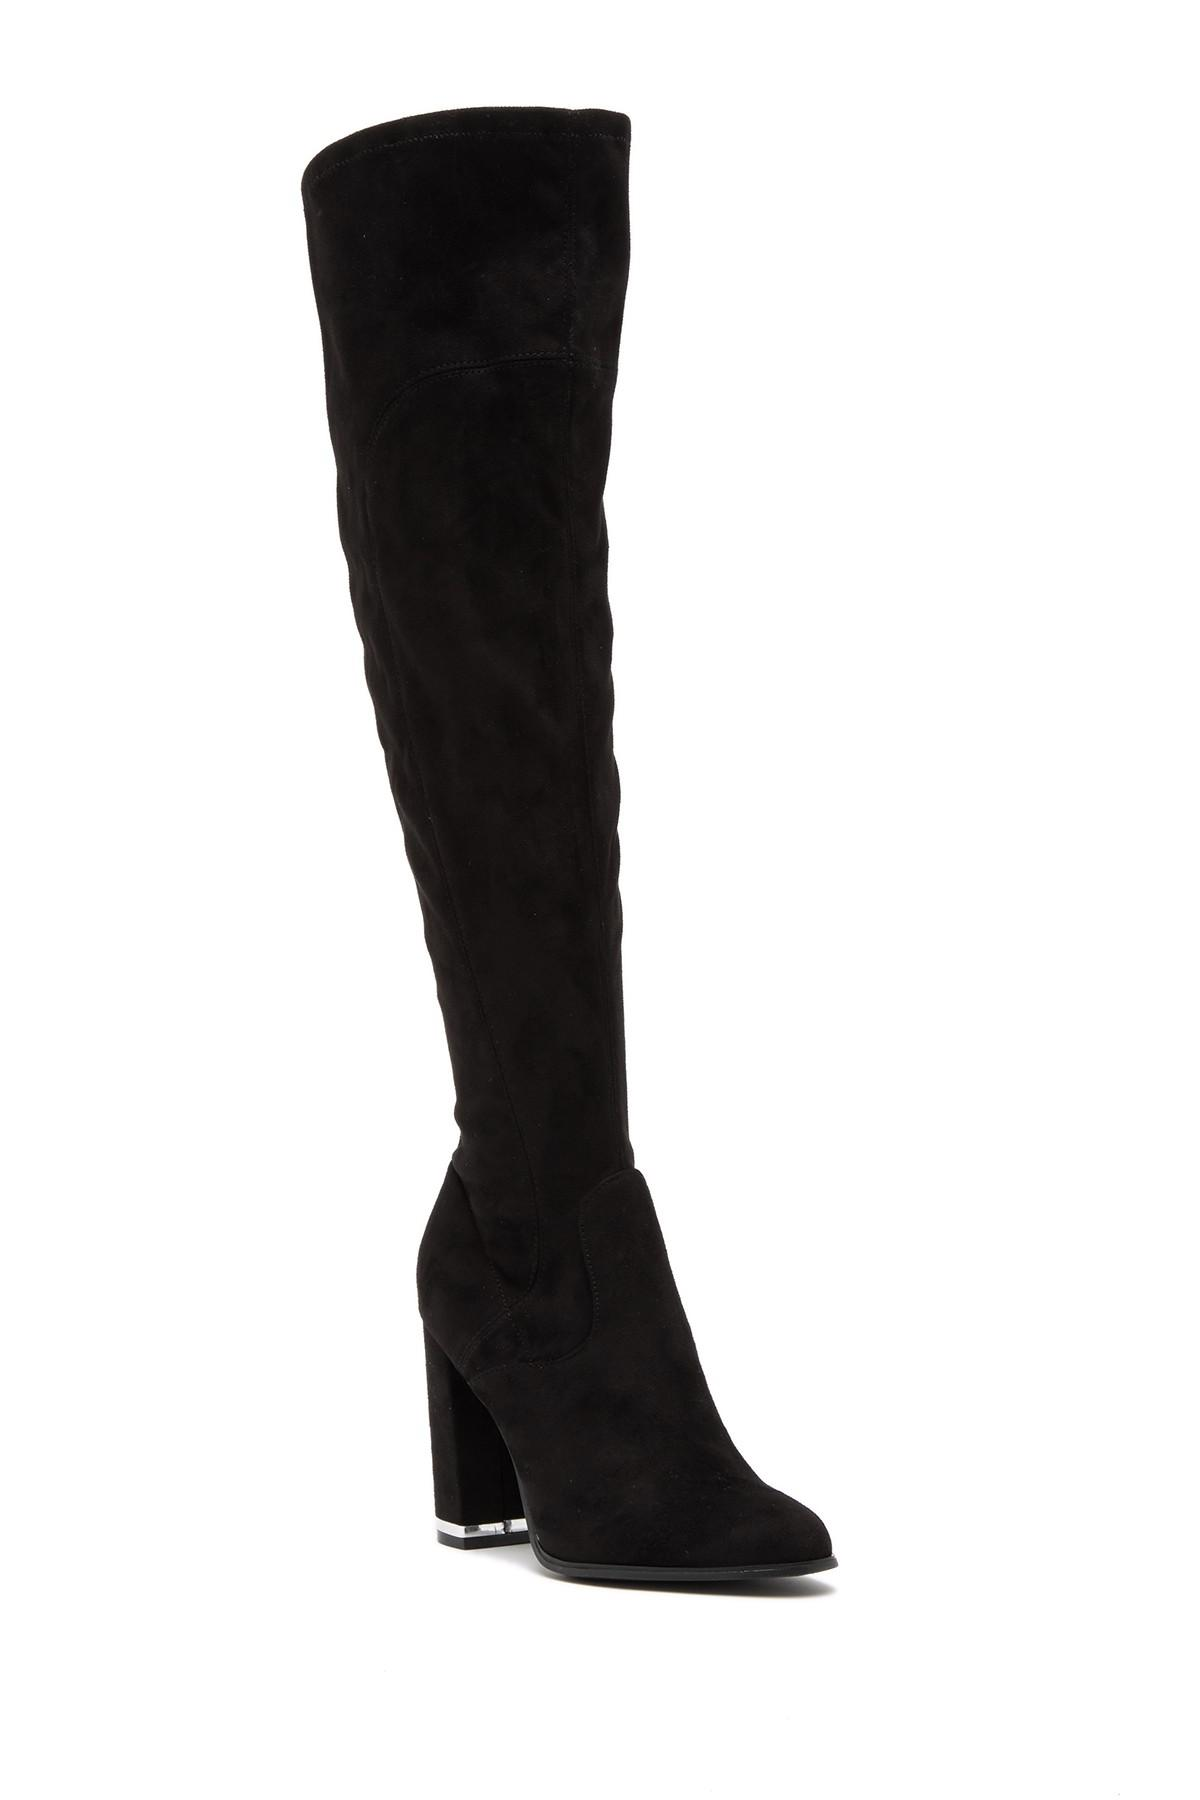 bb5e41ec2a3 Lyst - Marc Fisher Natier Tall Boot in Black